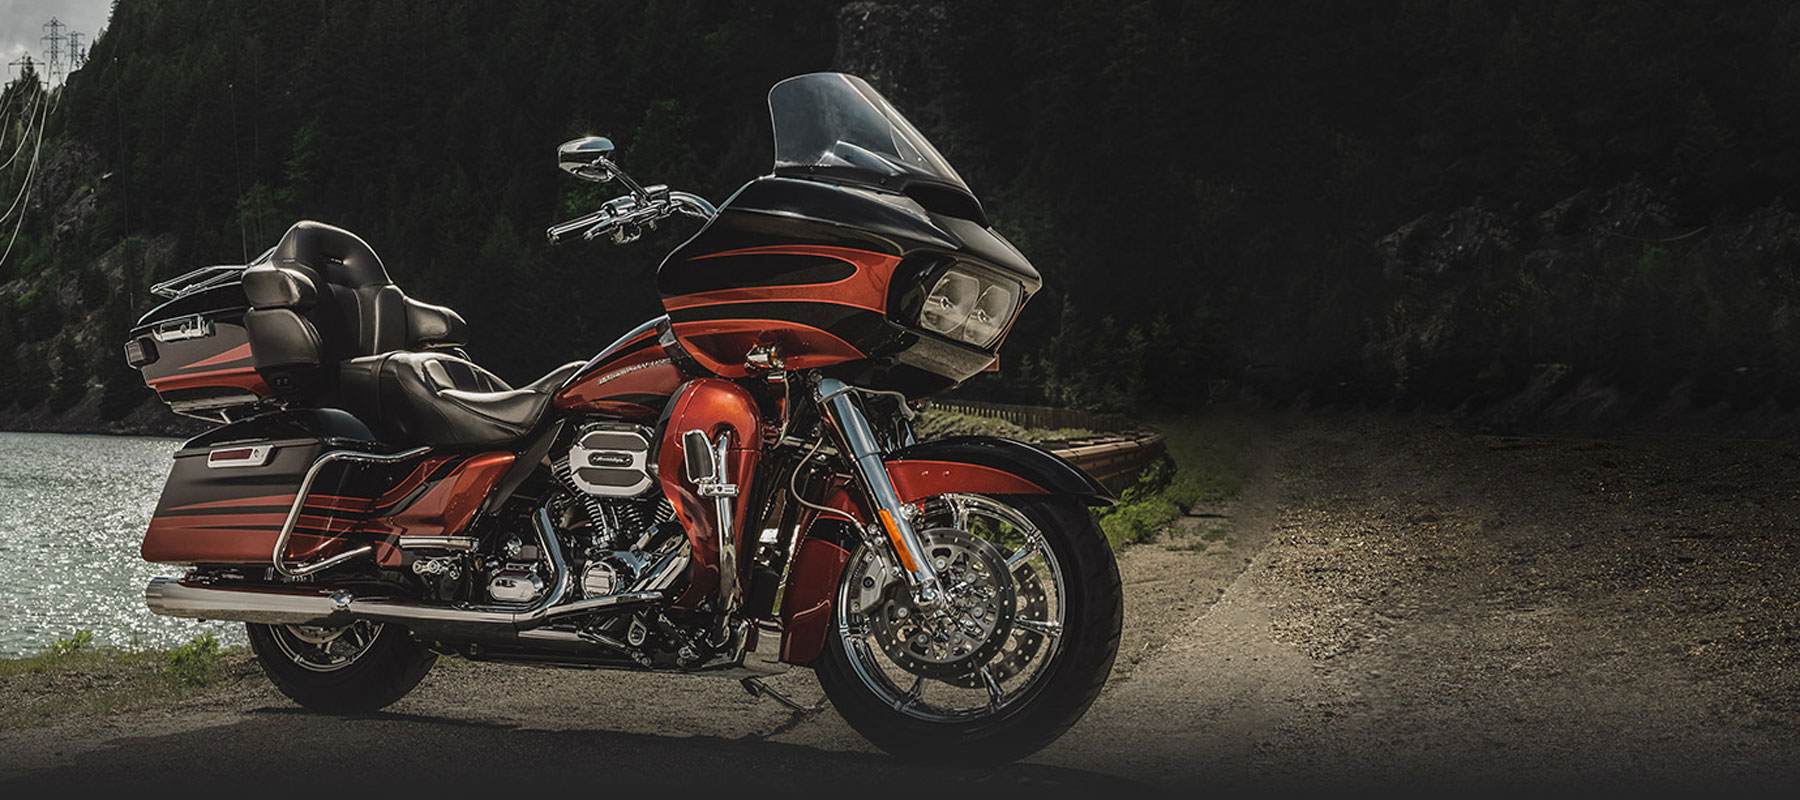 15-hd-cvo-road-glide-ultra-1